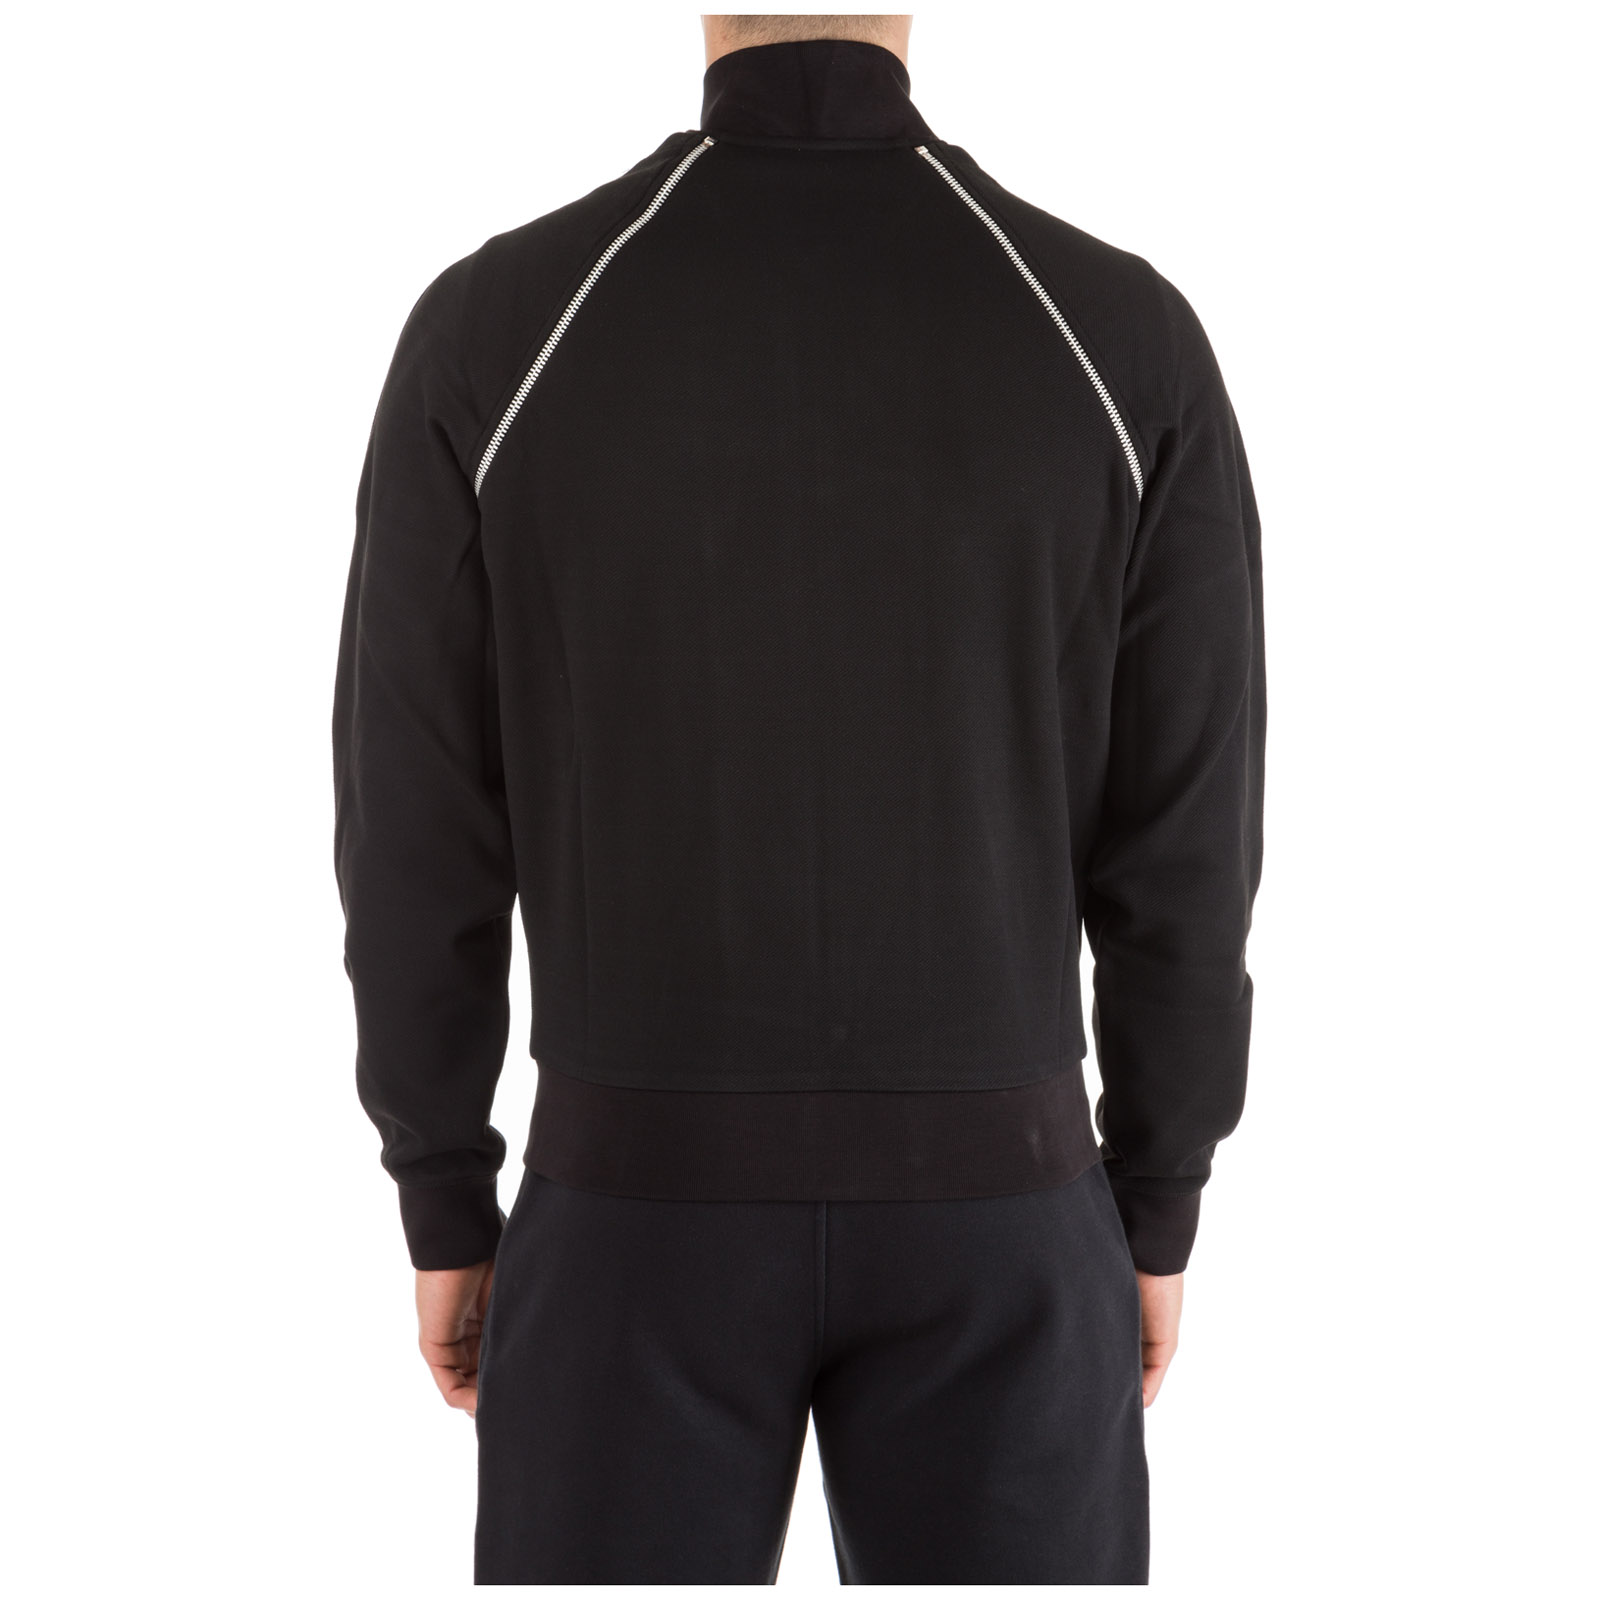 Men's sweatshirt with zip sweat